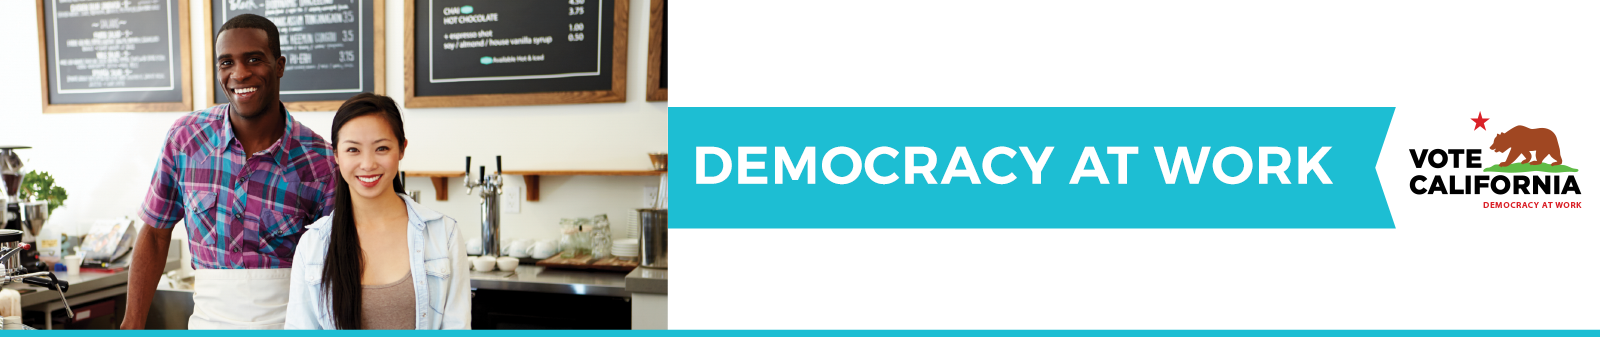 Democracy at work banner